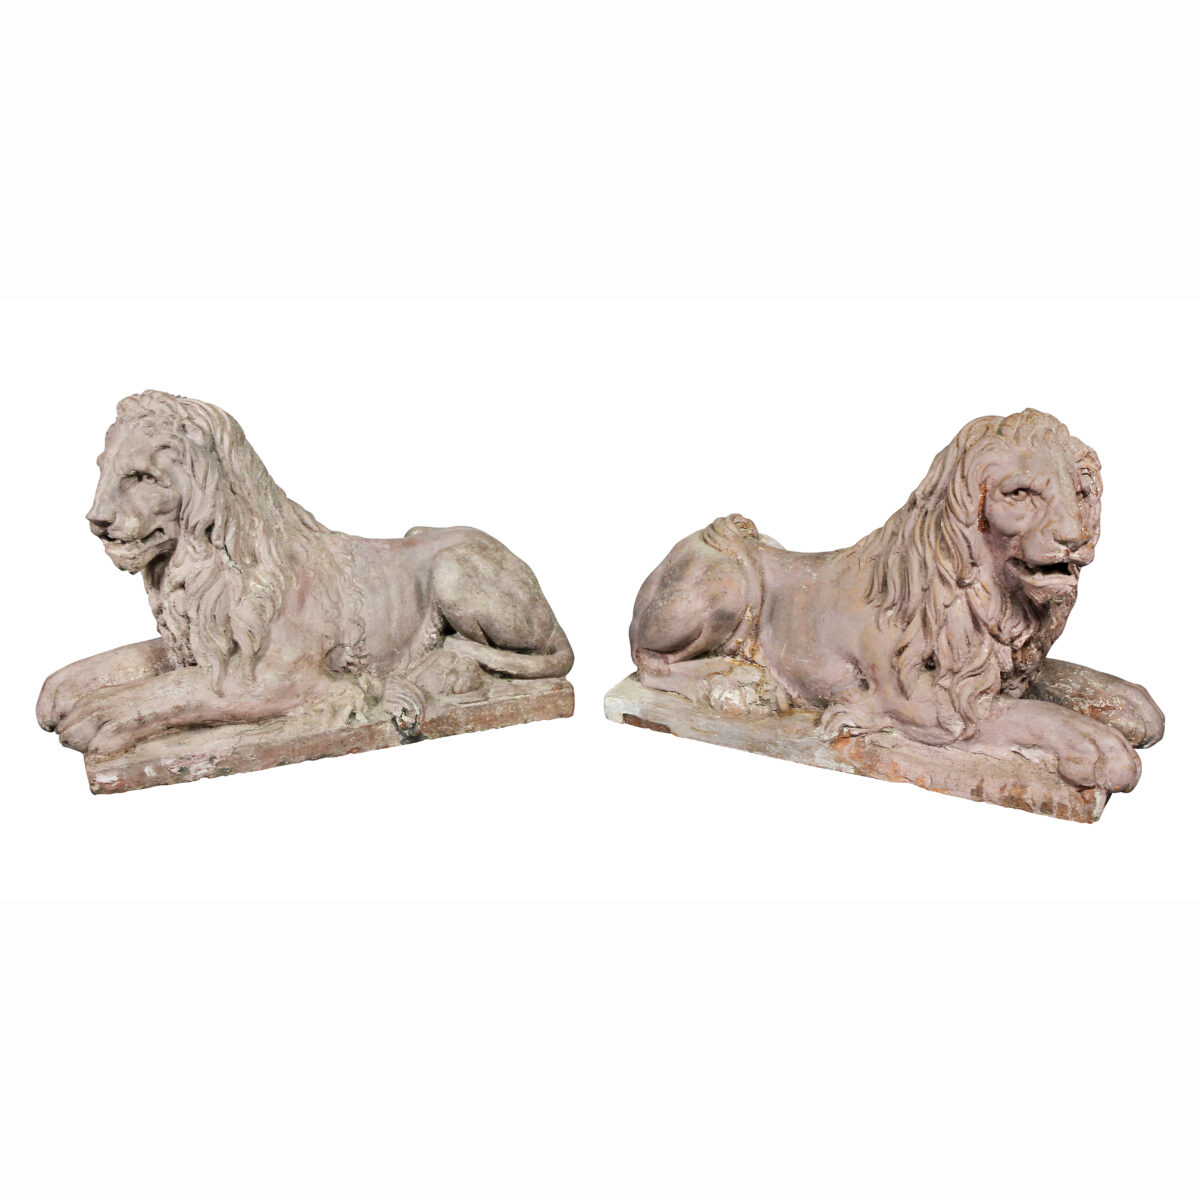 Pair of French Terracotta Figures of Crouching Lions.